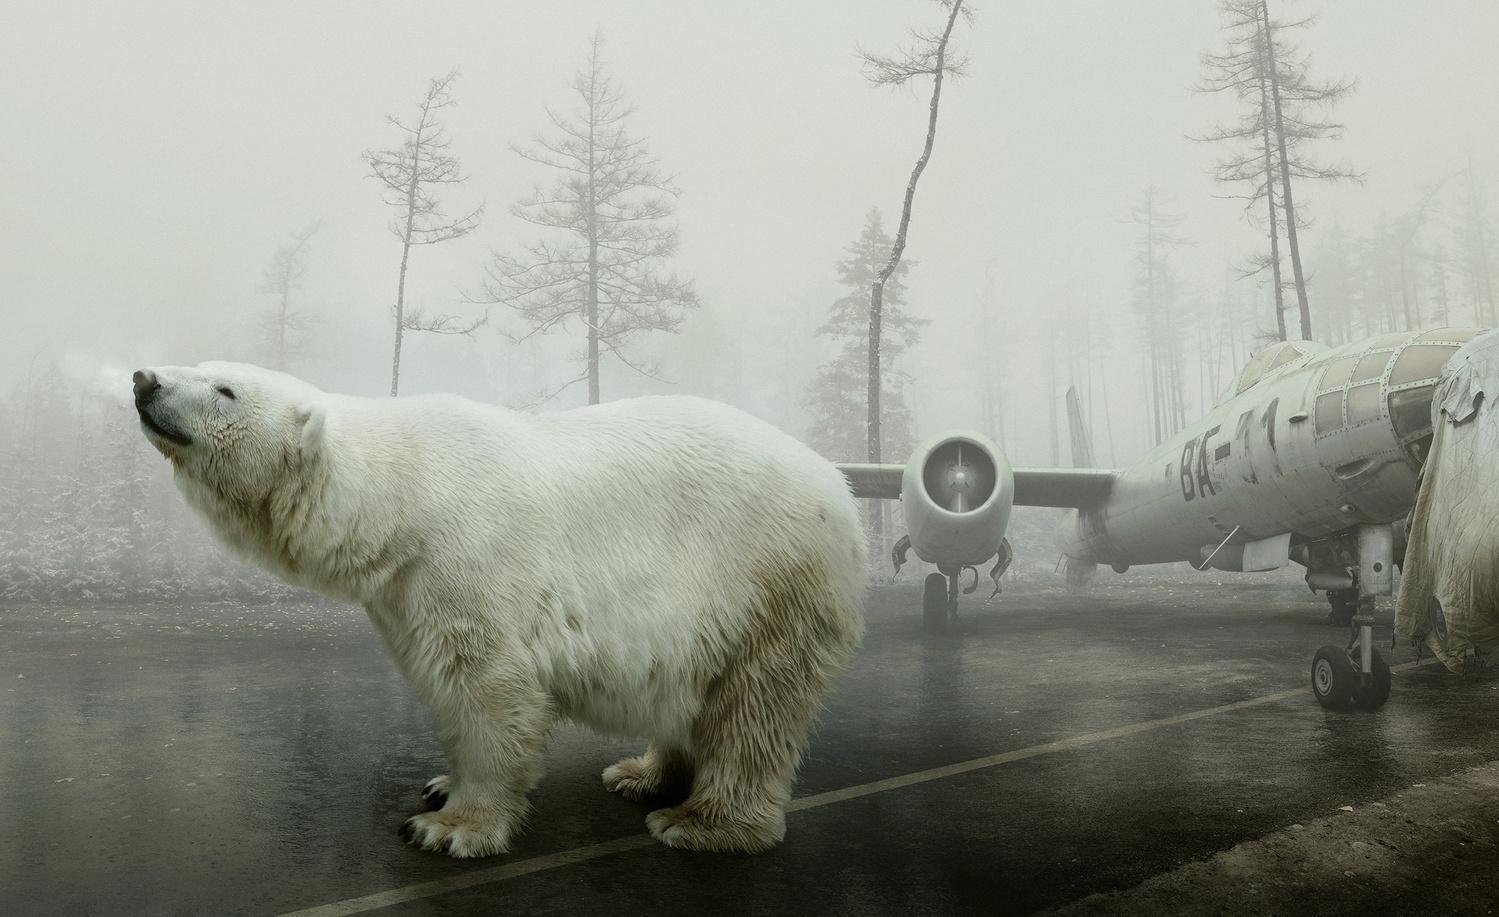 Bear With Me by Martin Stranka